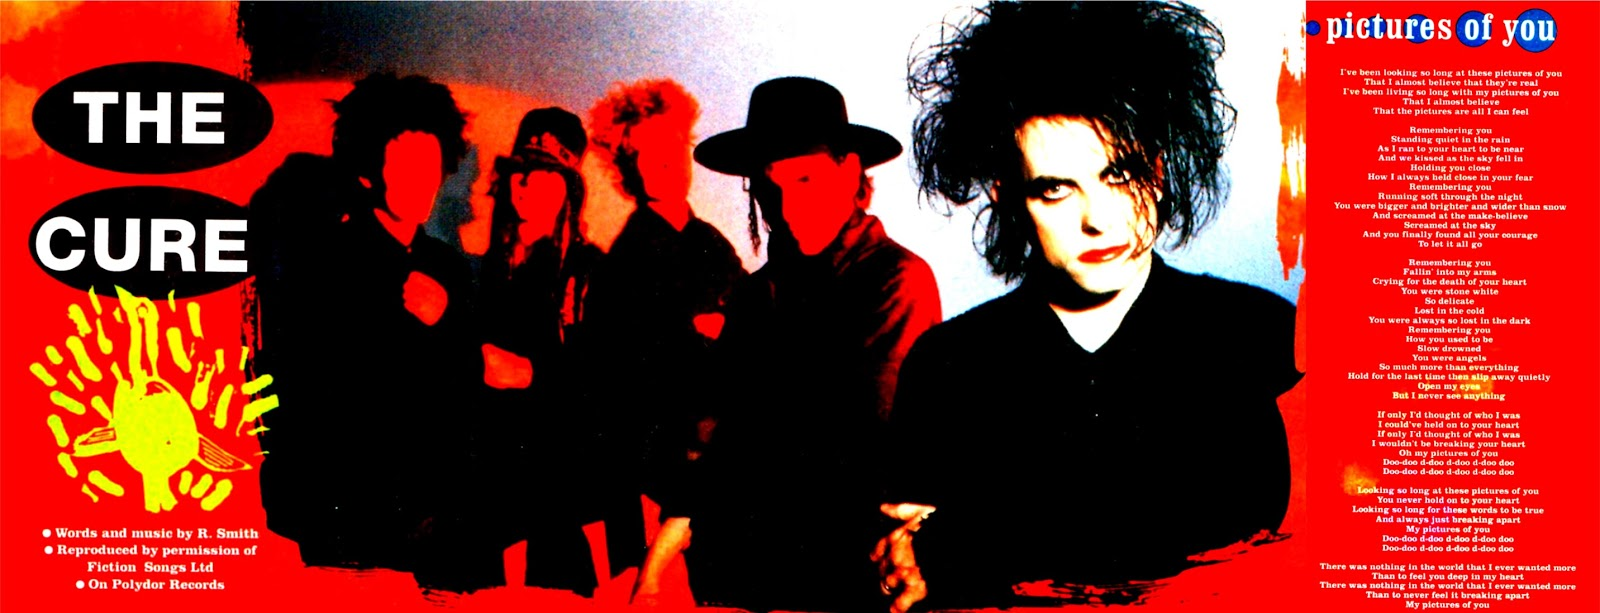 the cure pictures of you - 1600×613